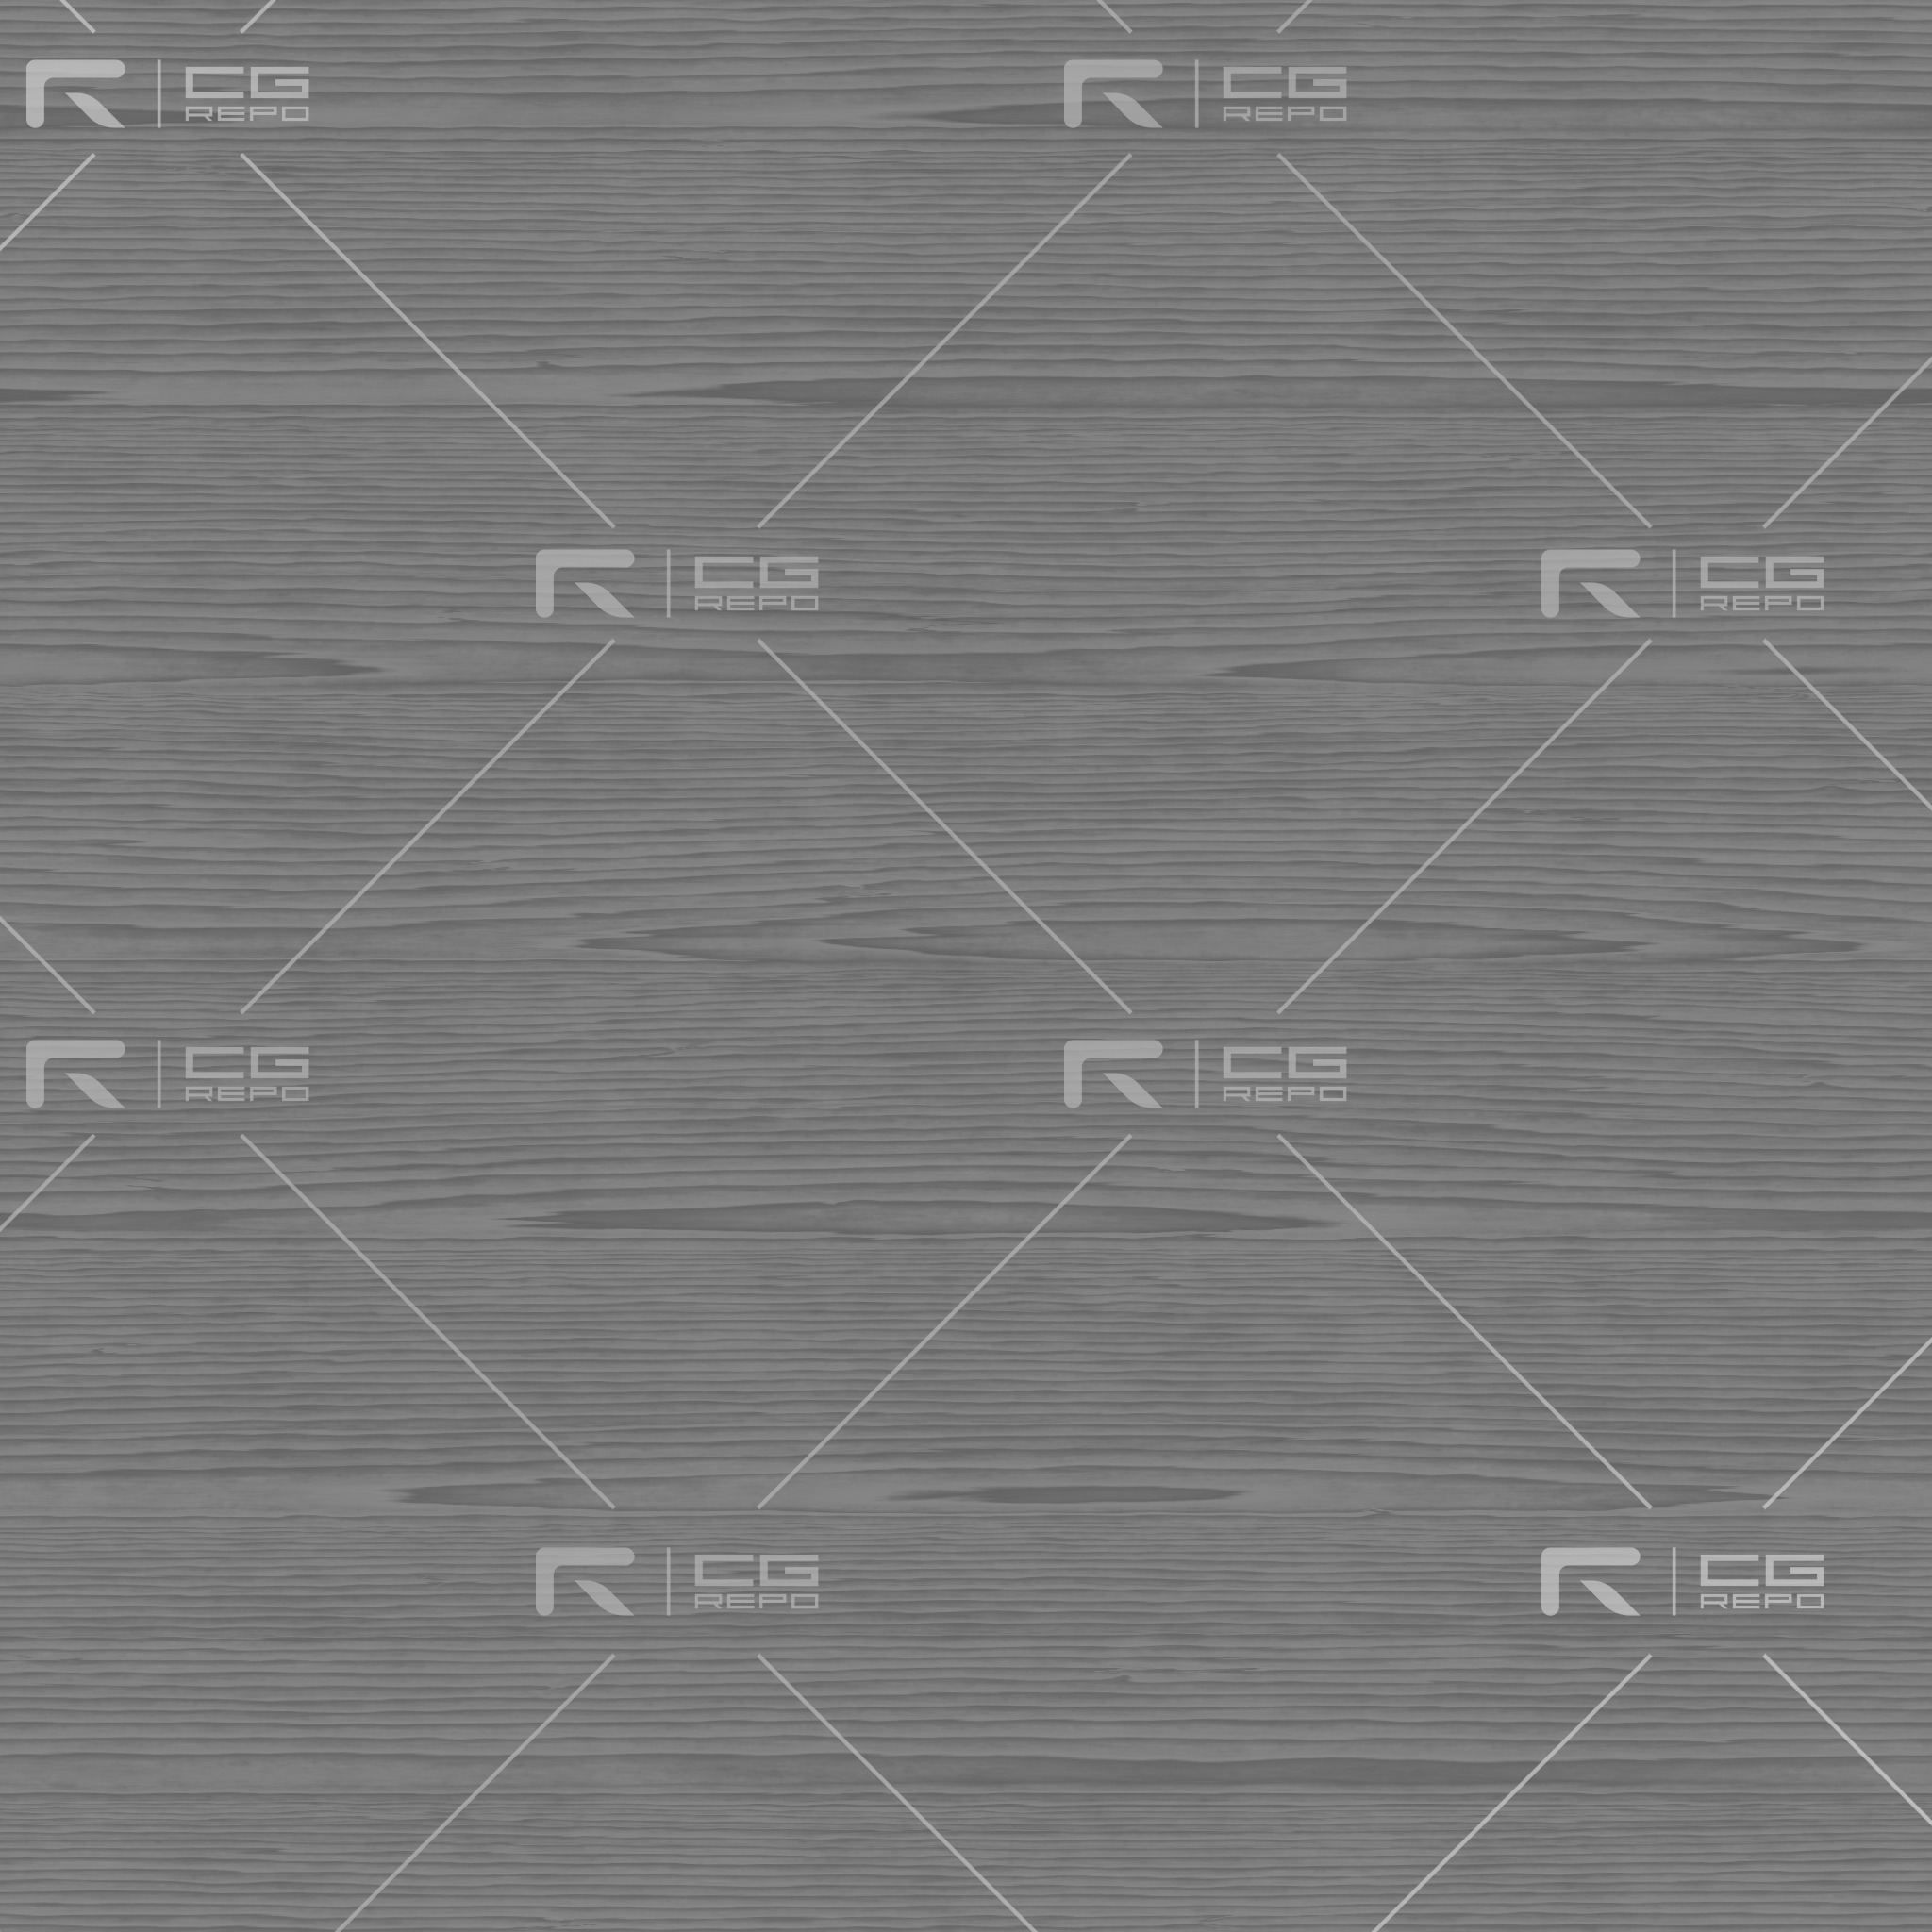 Oak - White Washed - Rift Roughness Texture